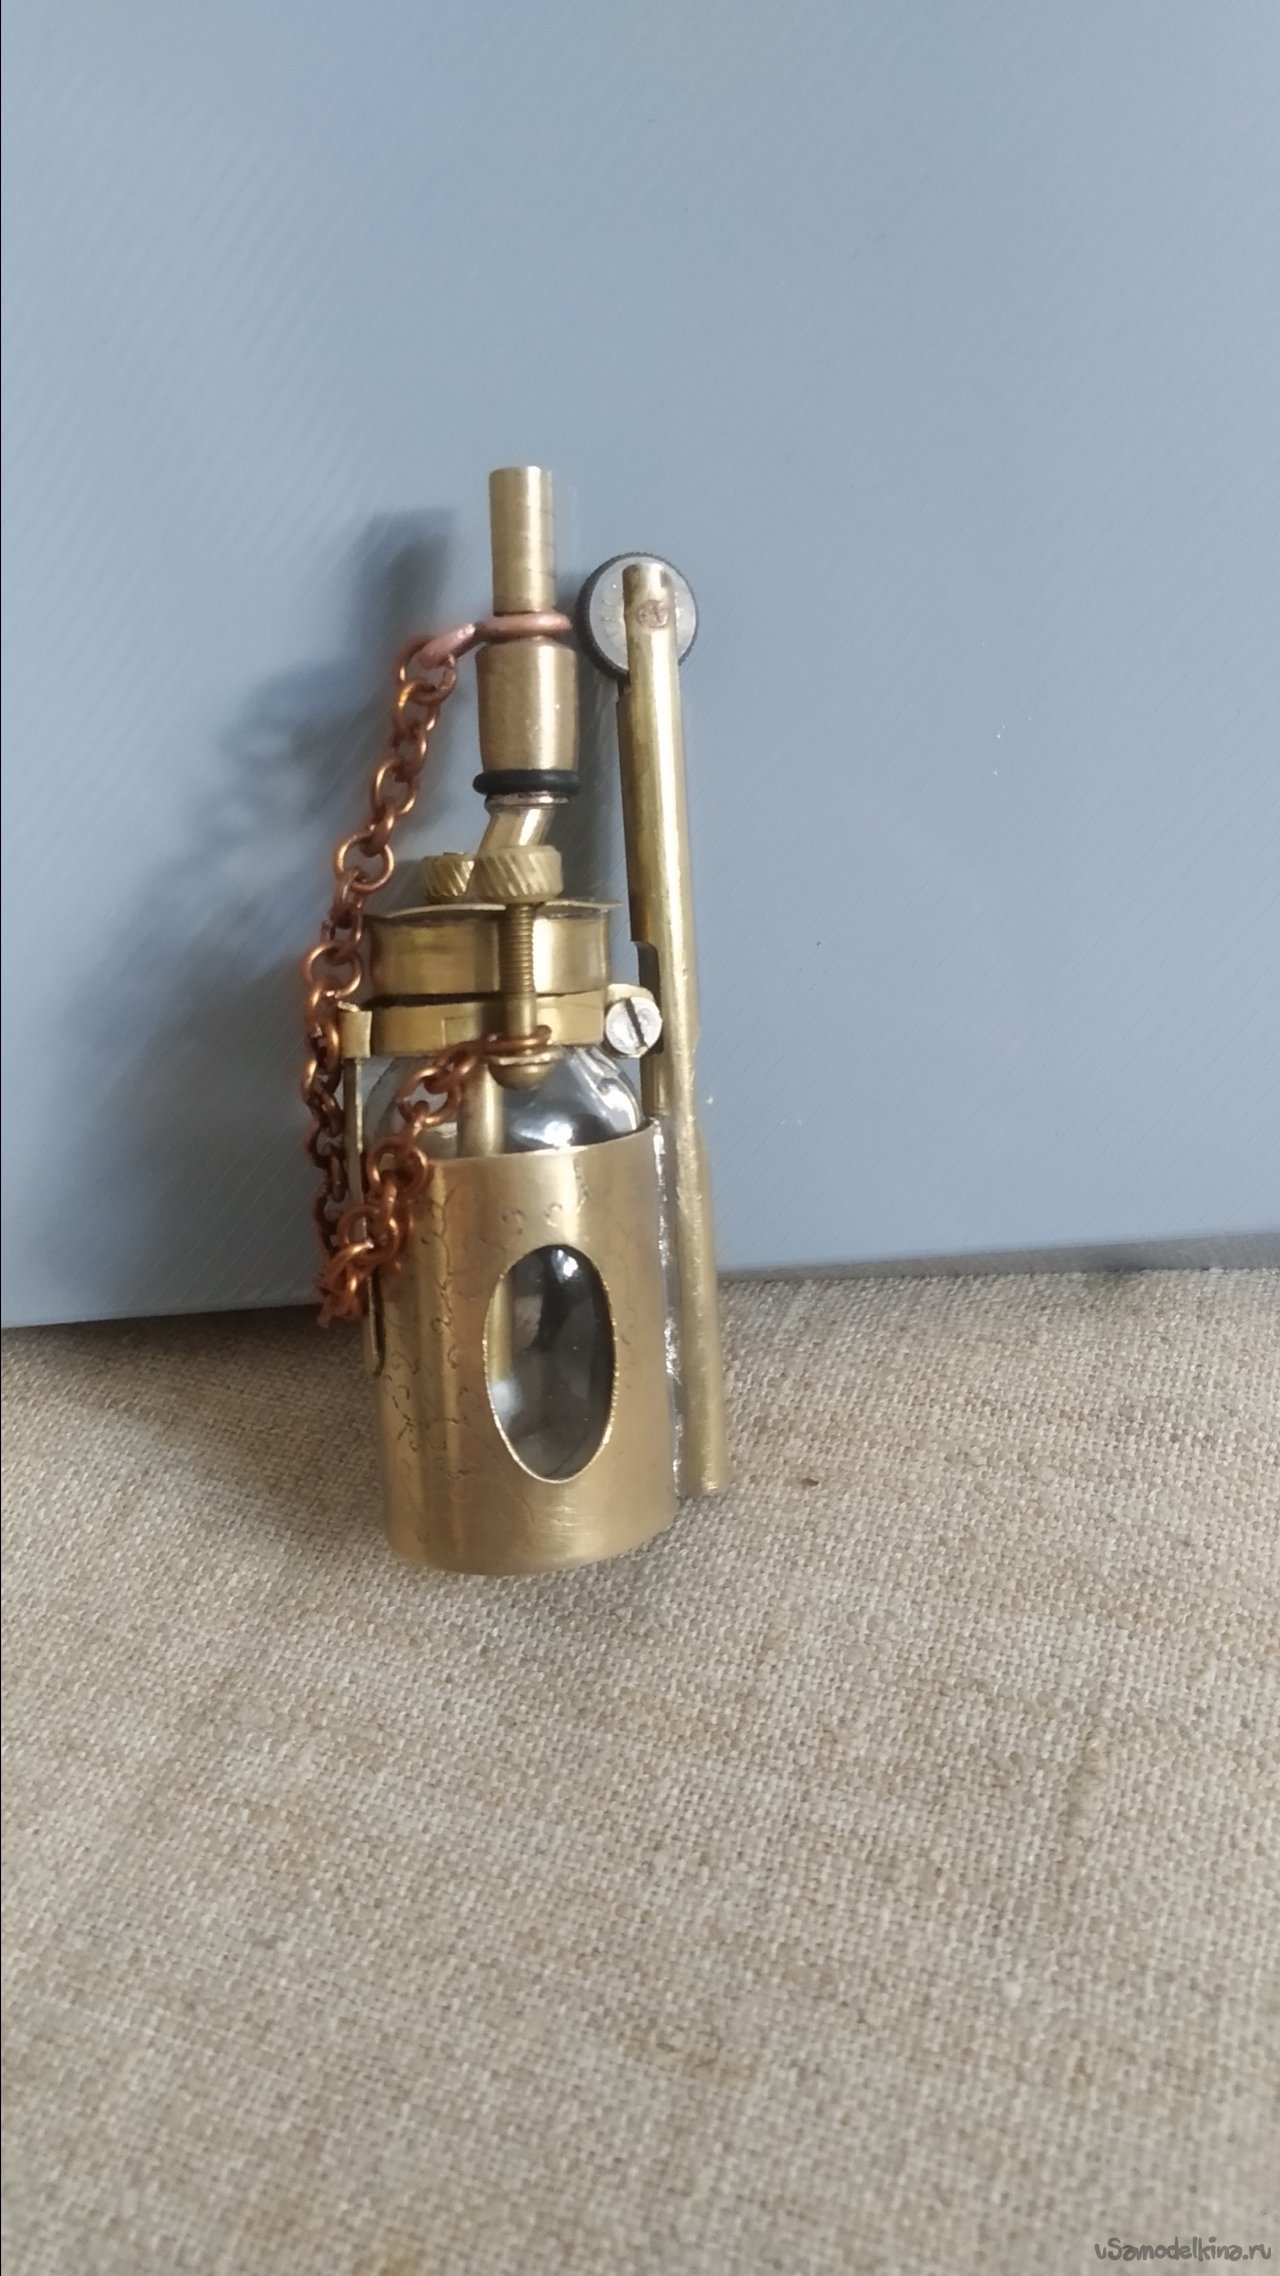 Homemade gasoline lighter made of glass bubble and brass